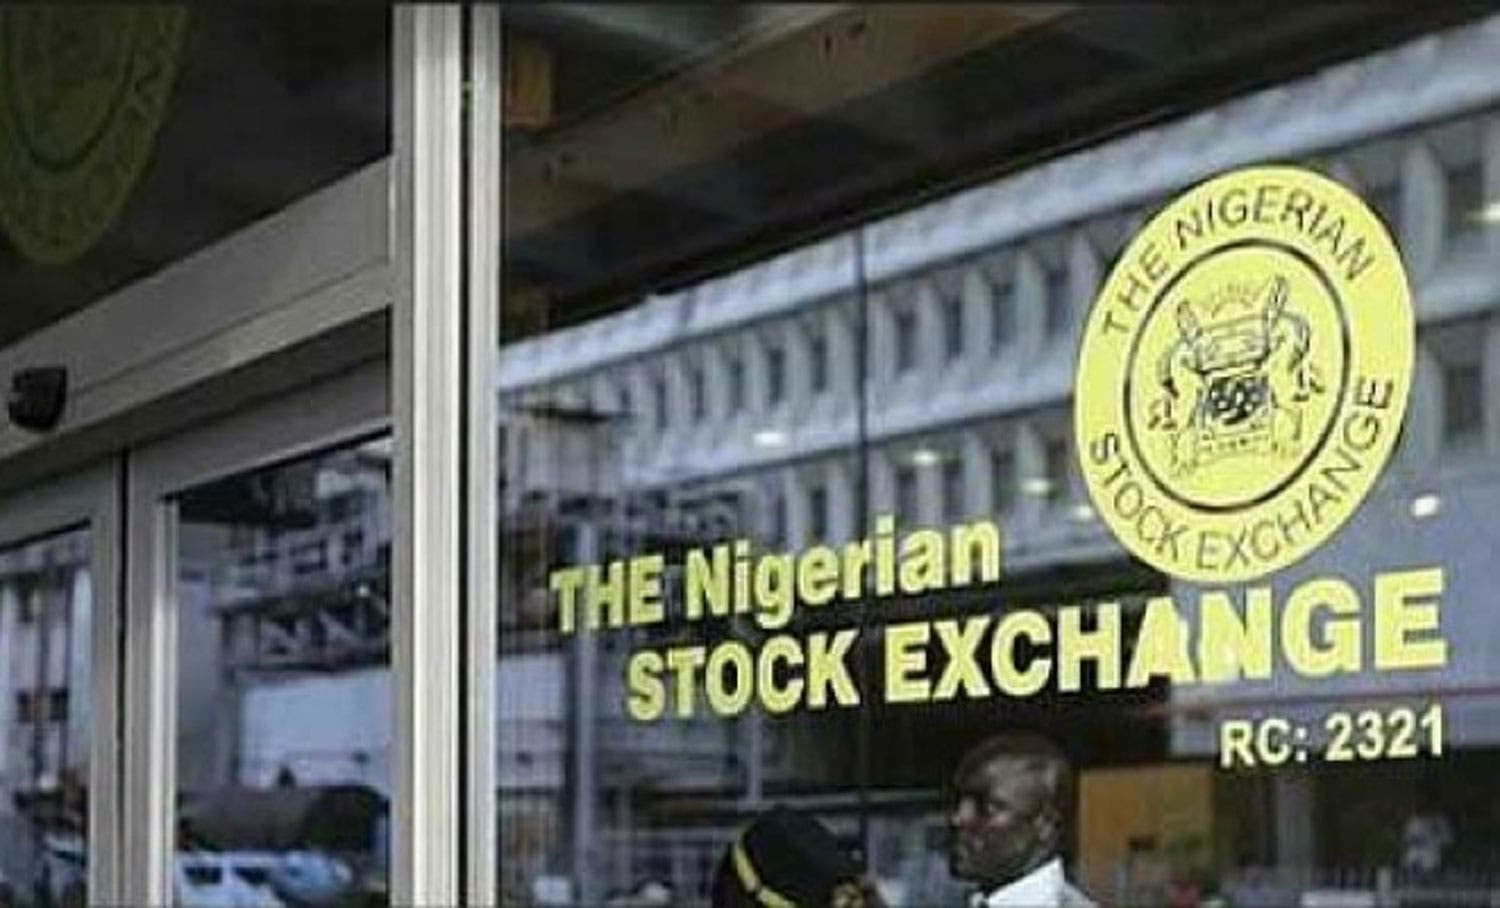 Nigerian Stock Exchange suspends 6 firms